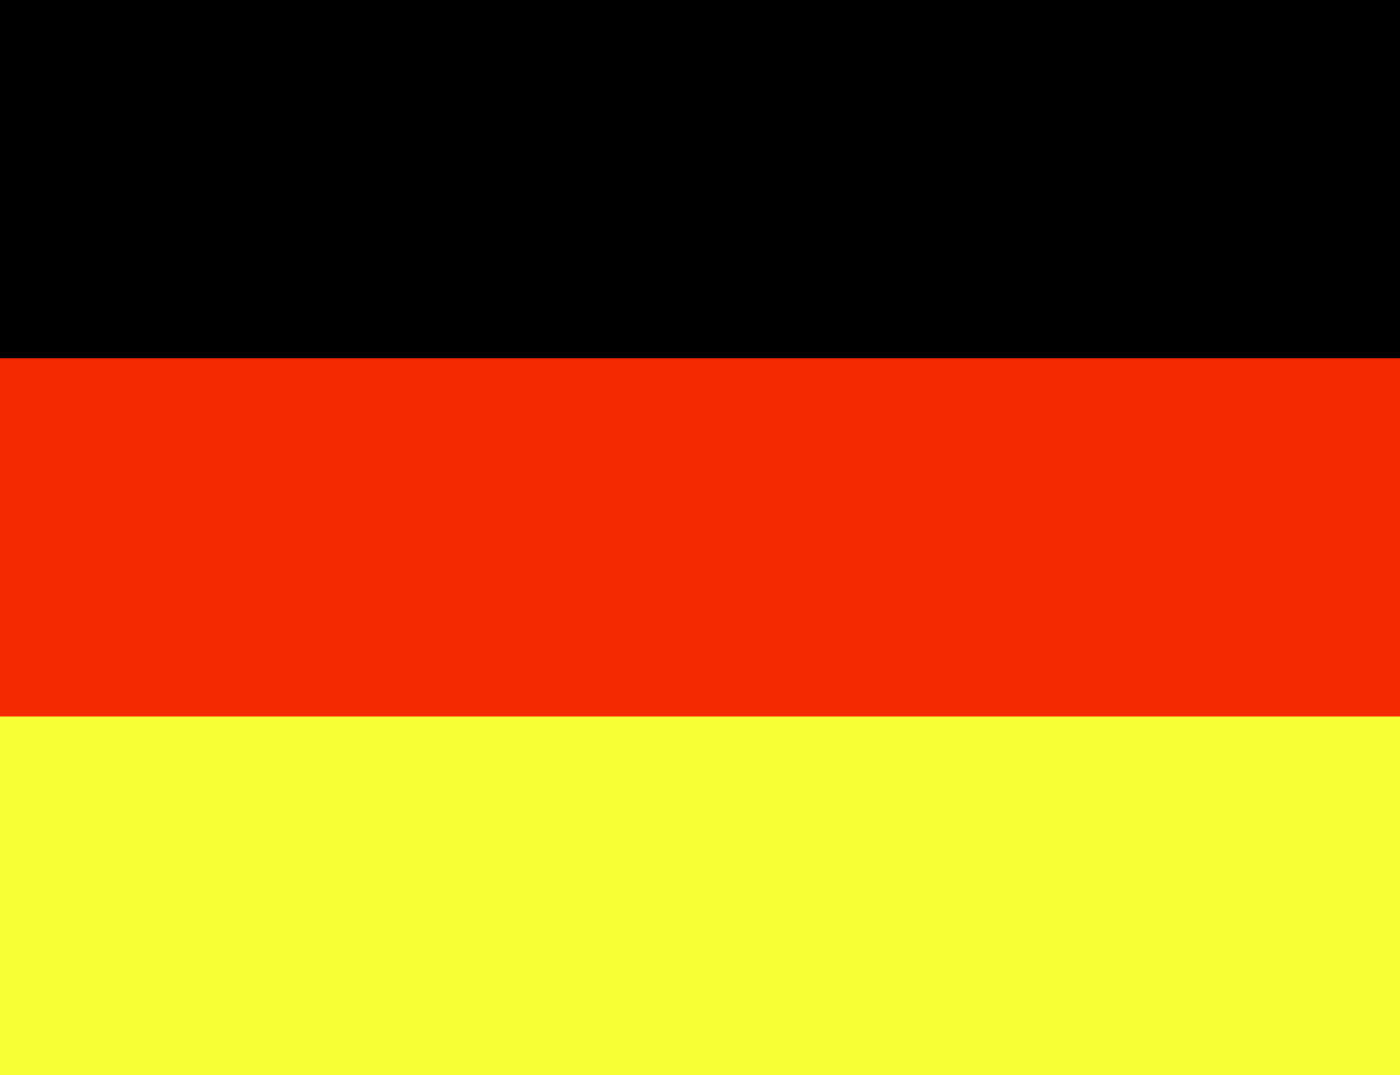 Flag wallpaper of germany